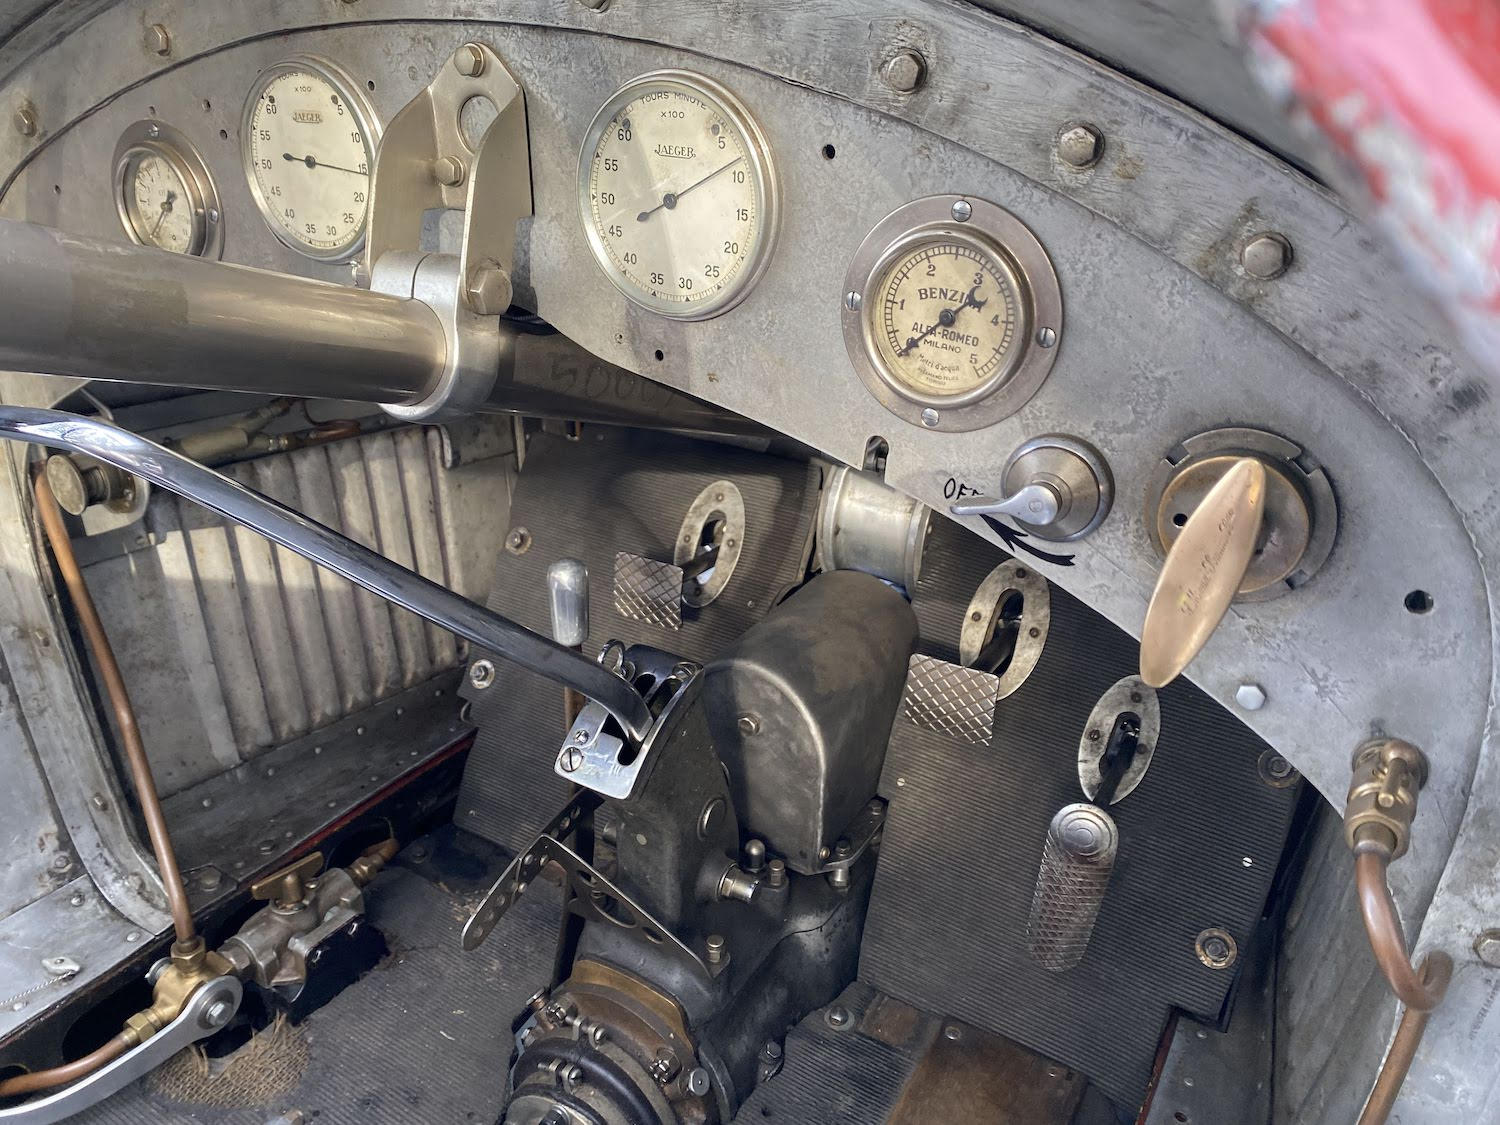 alfa romeo vintage race car interior cockpit dash gauges